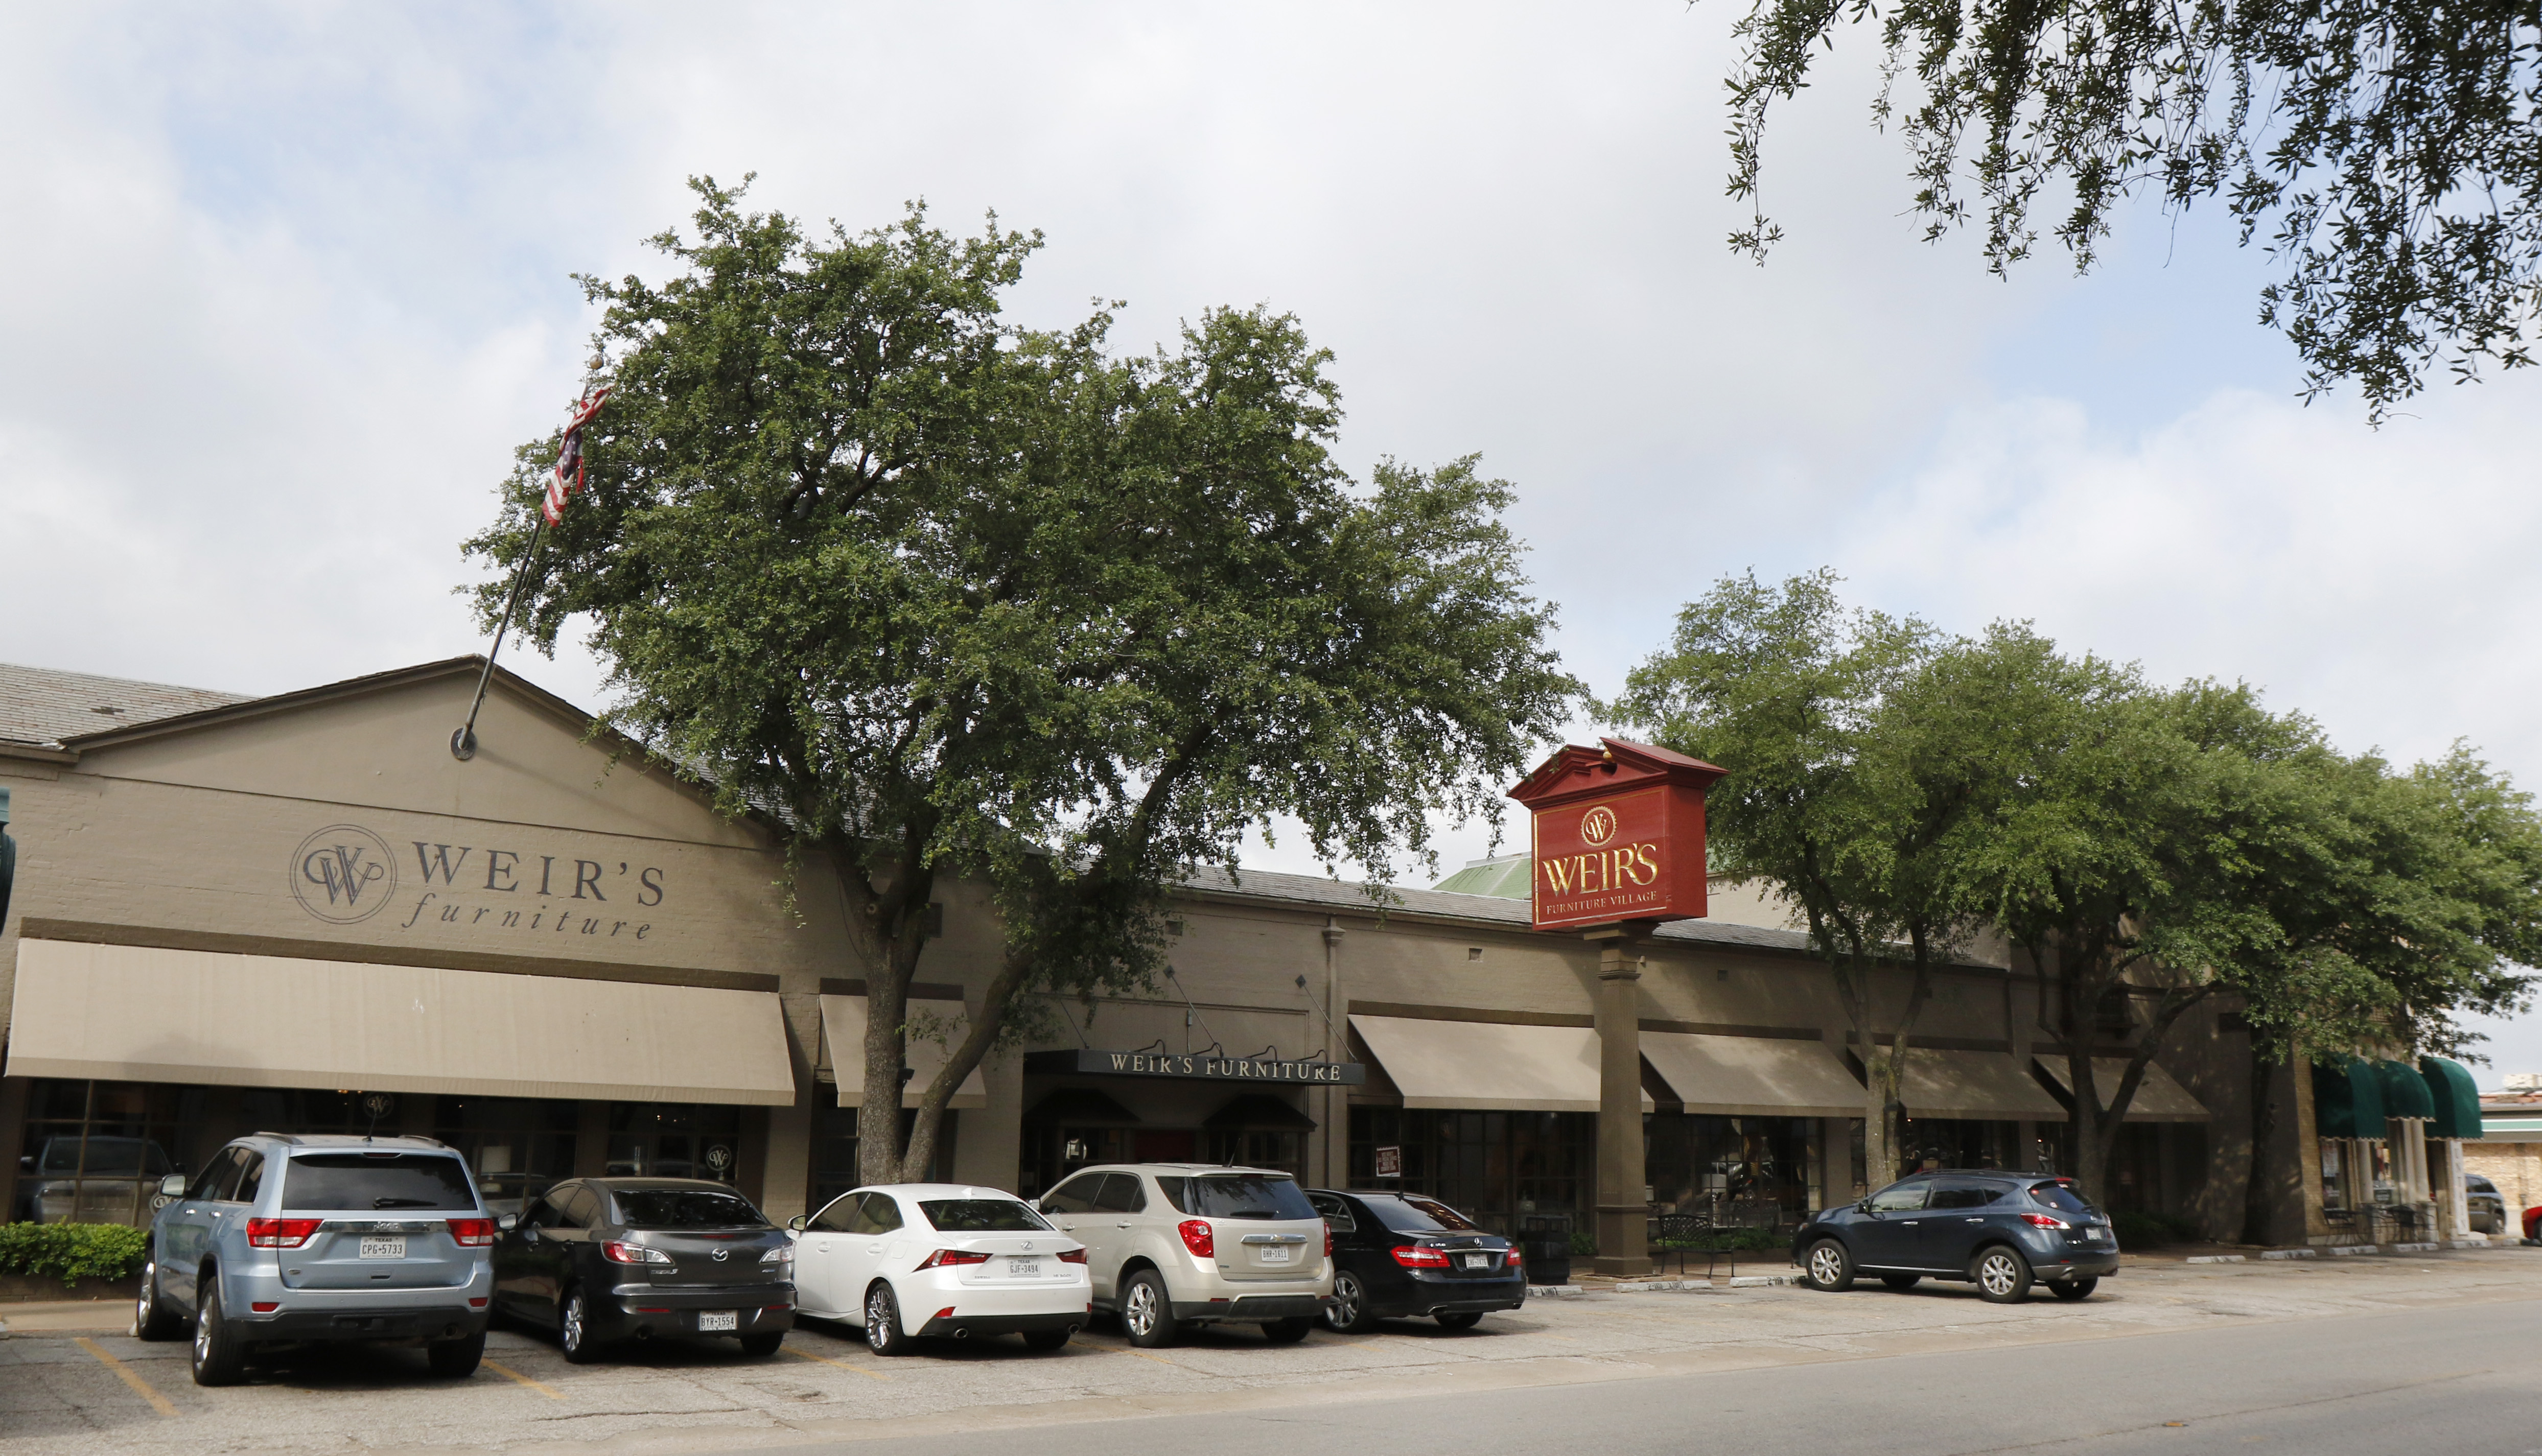 Weir s Furniture looks to spruce up its longtime home on Dallas